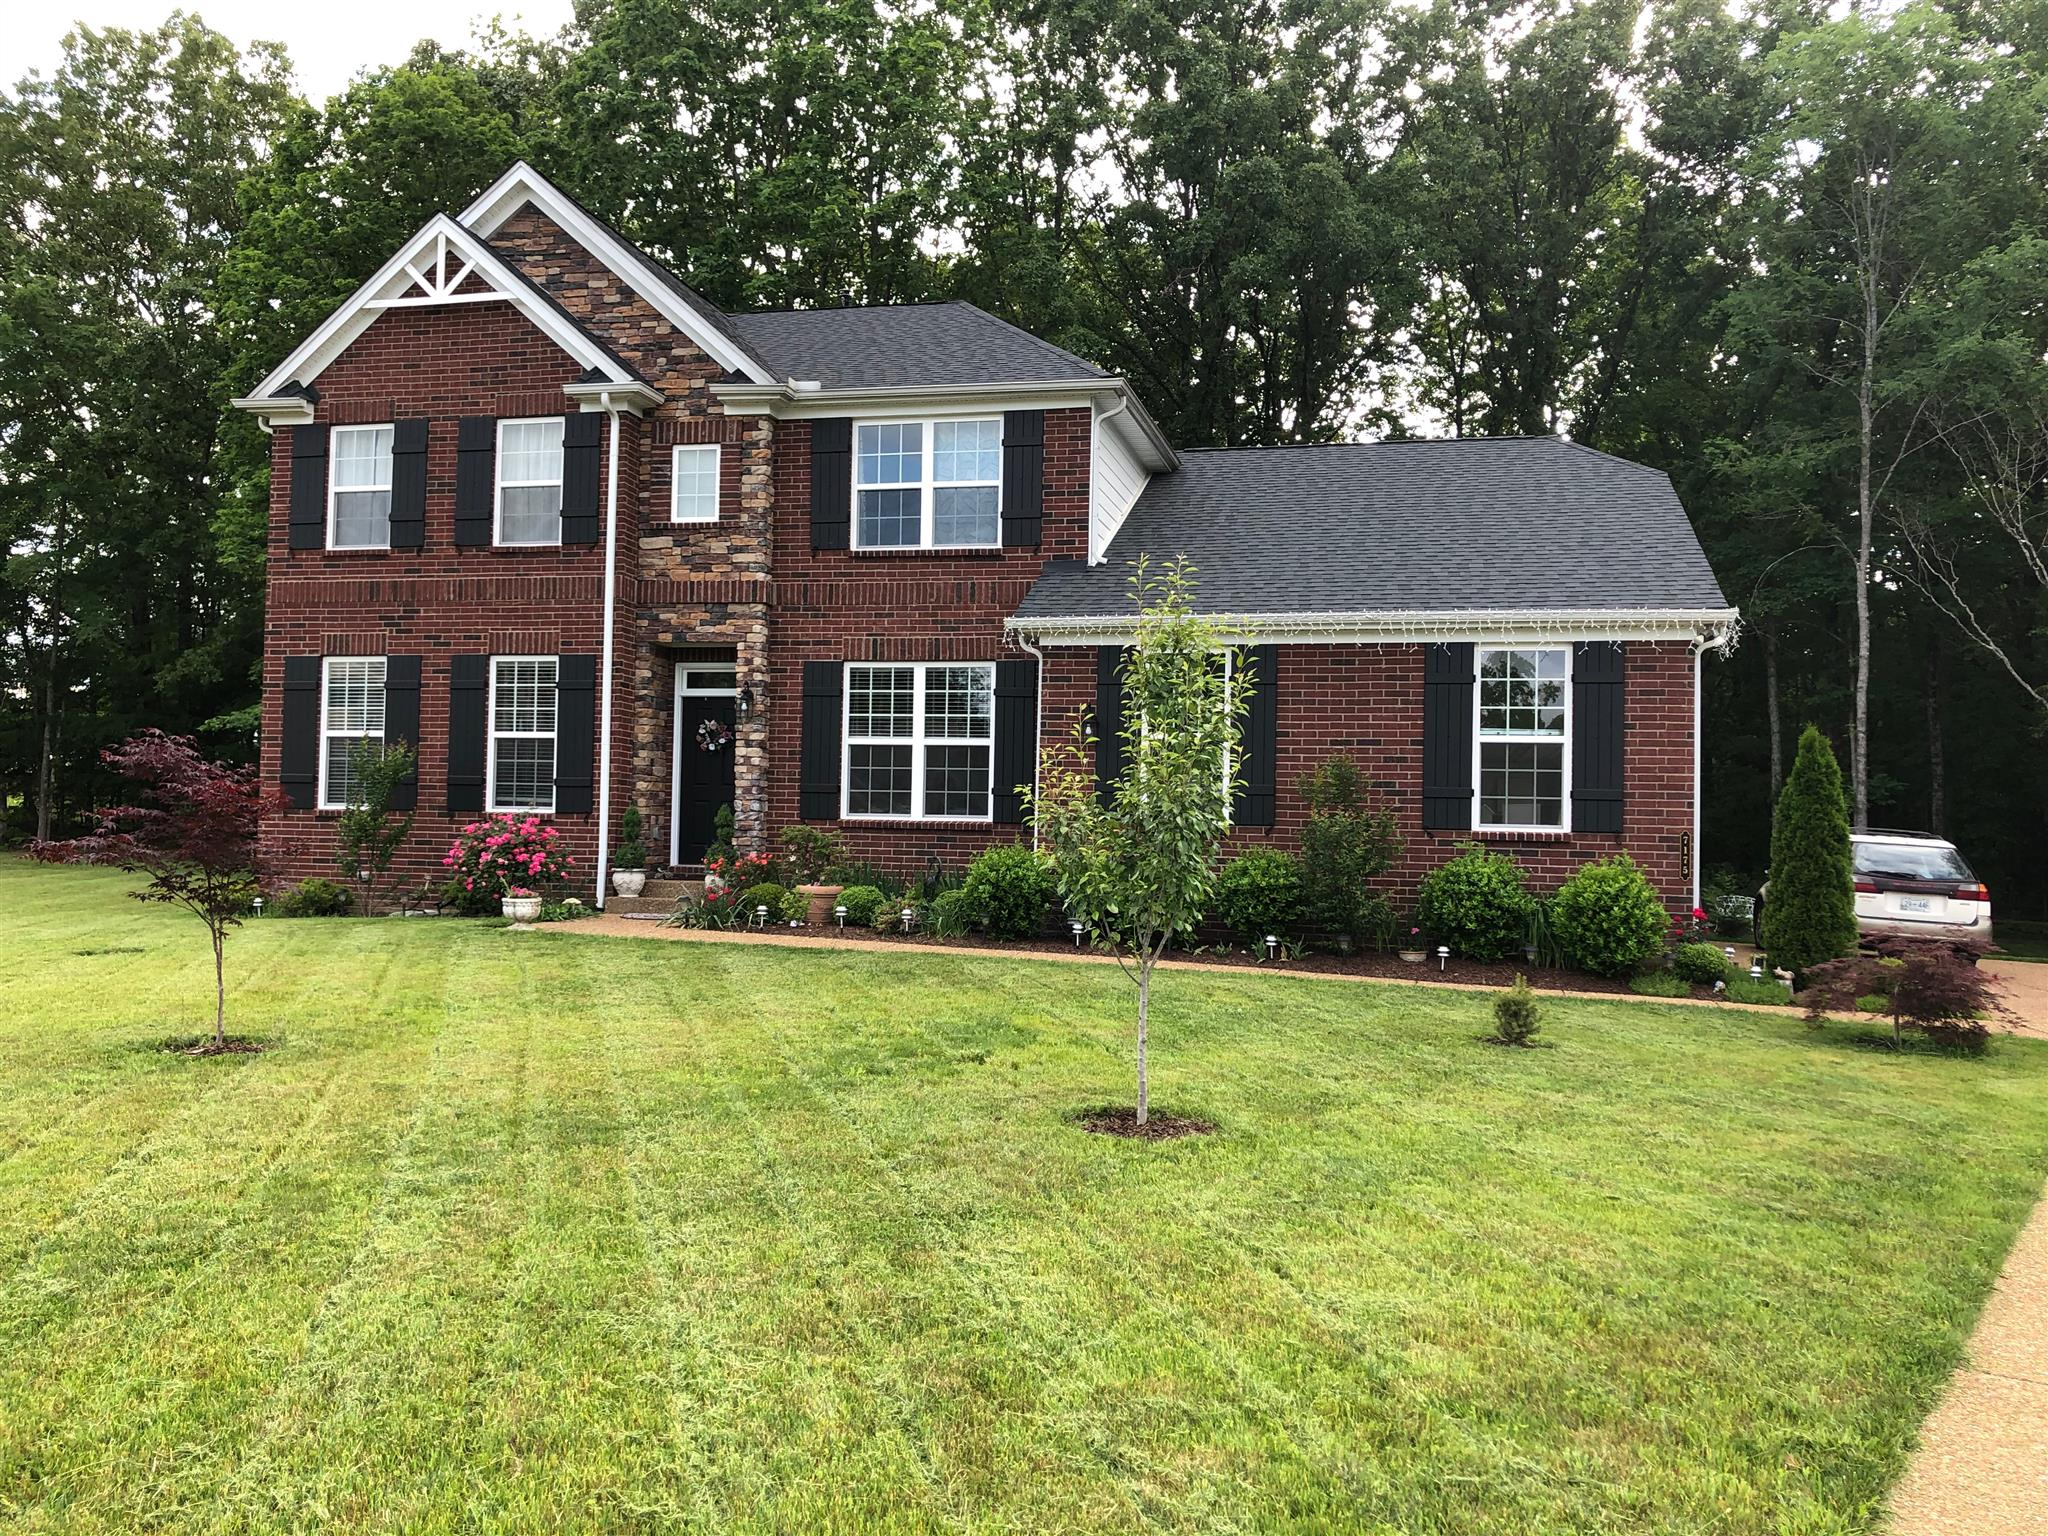 7175 Triple Crown Lane, Fairview in Williamson County County, TN 37062 Home for Sale